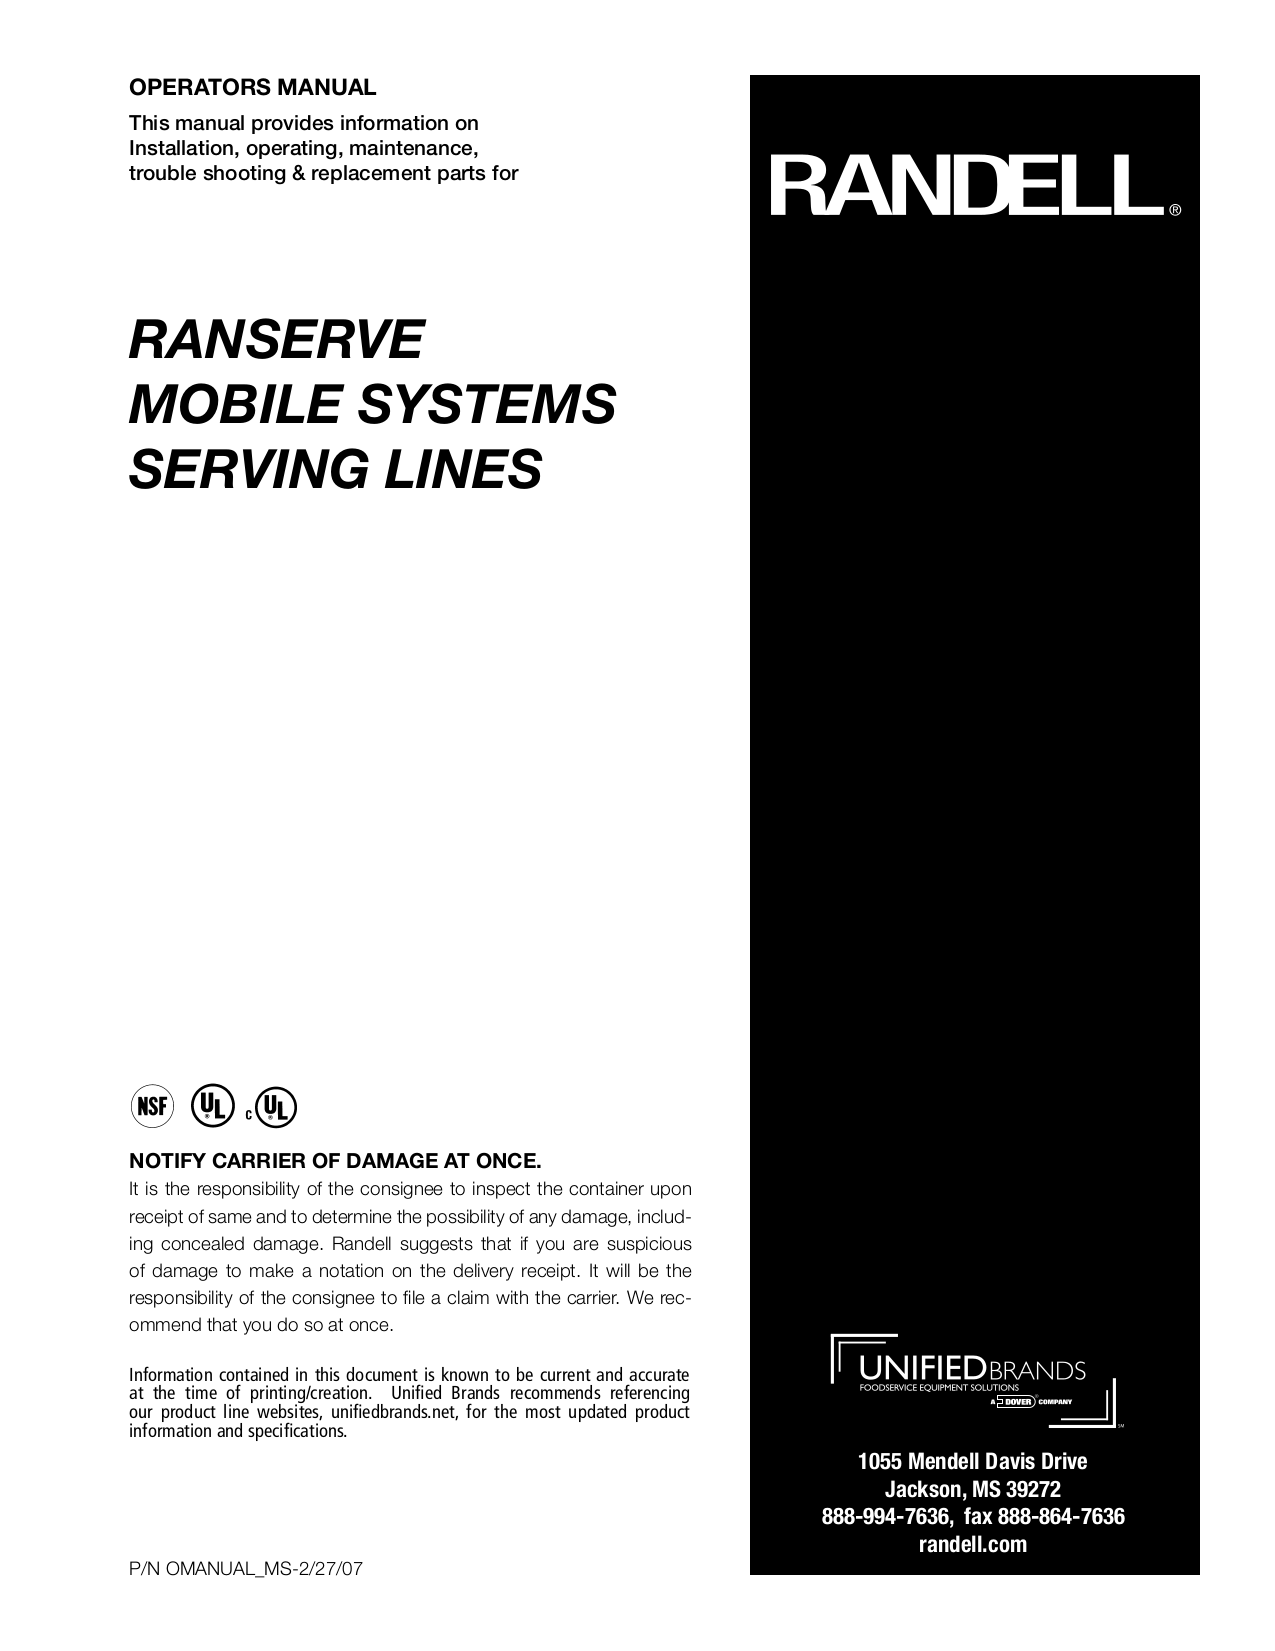 pdf for Randell Other 14G SCA-4 Food Holding Units manual